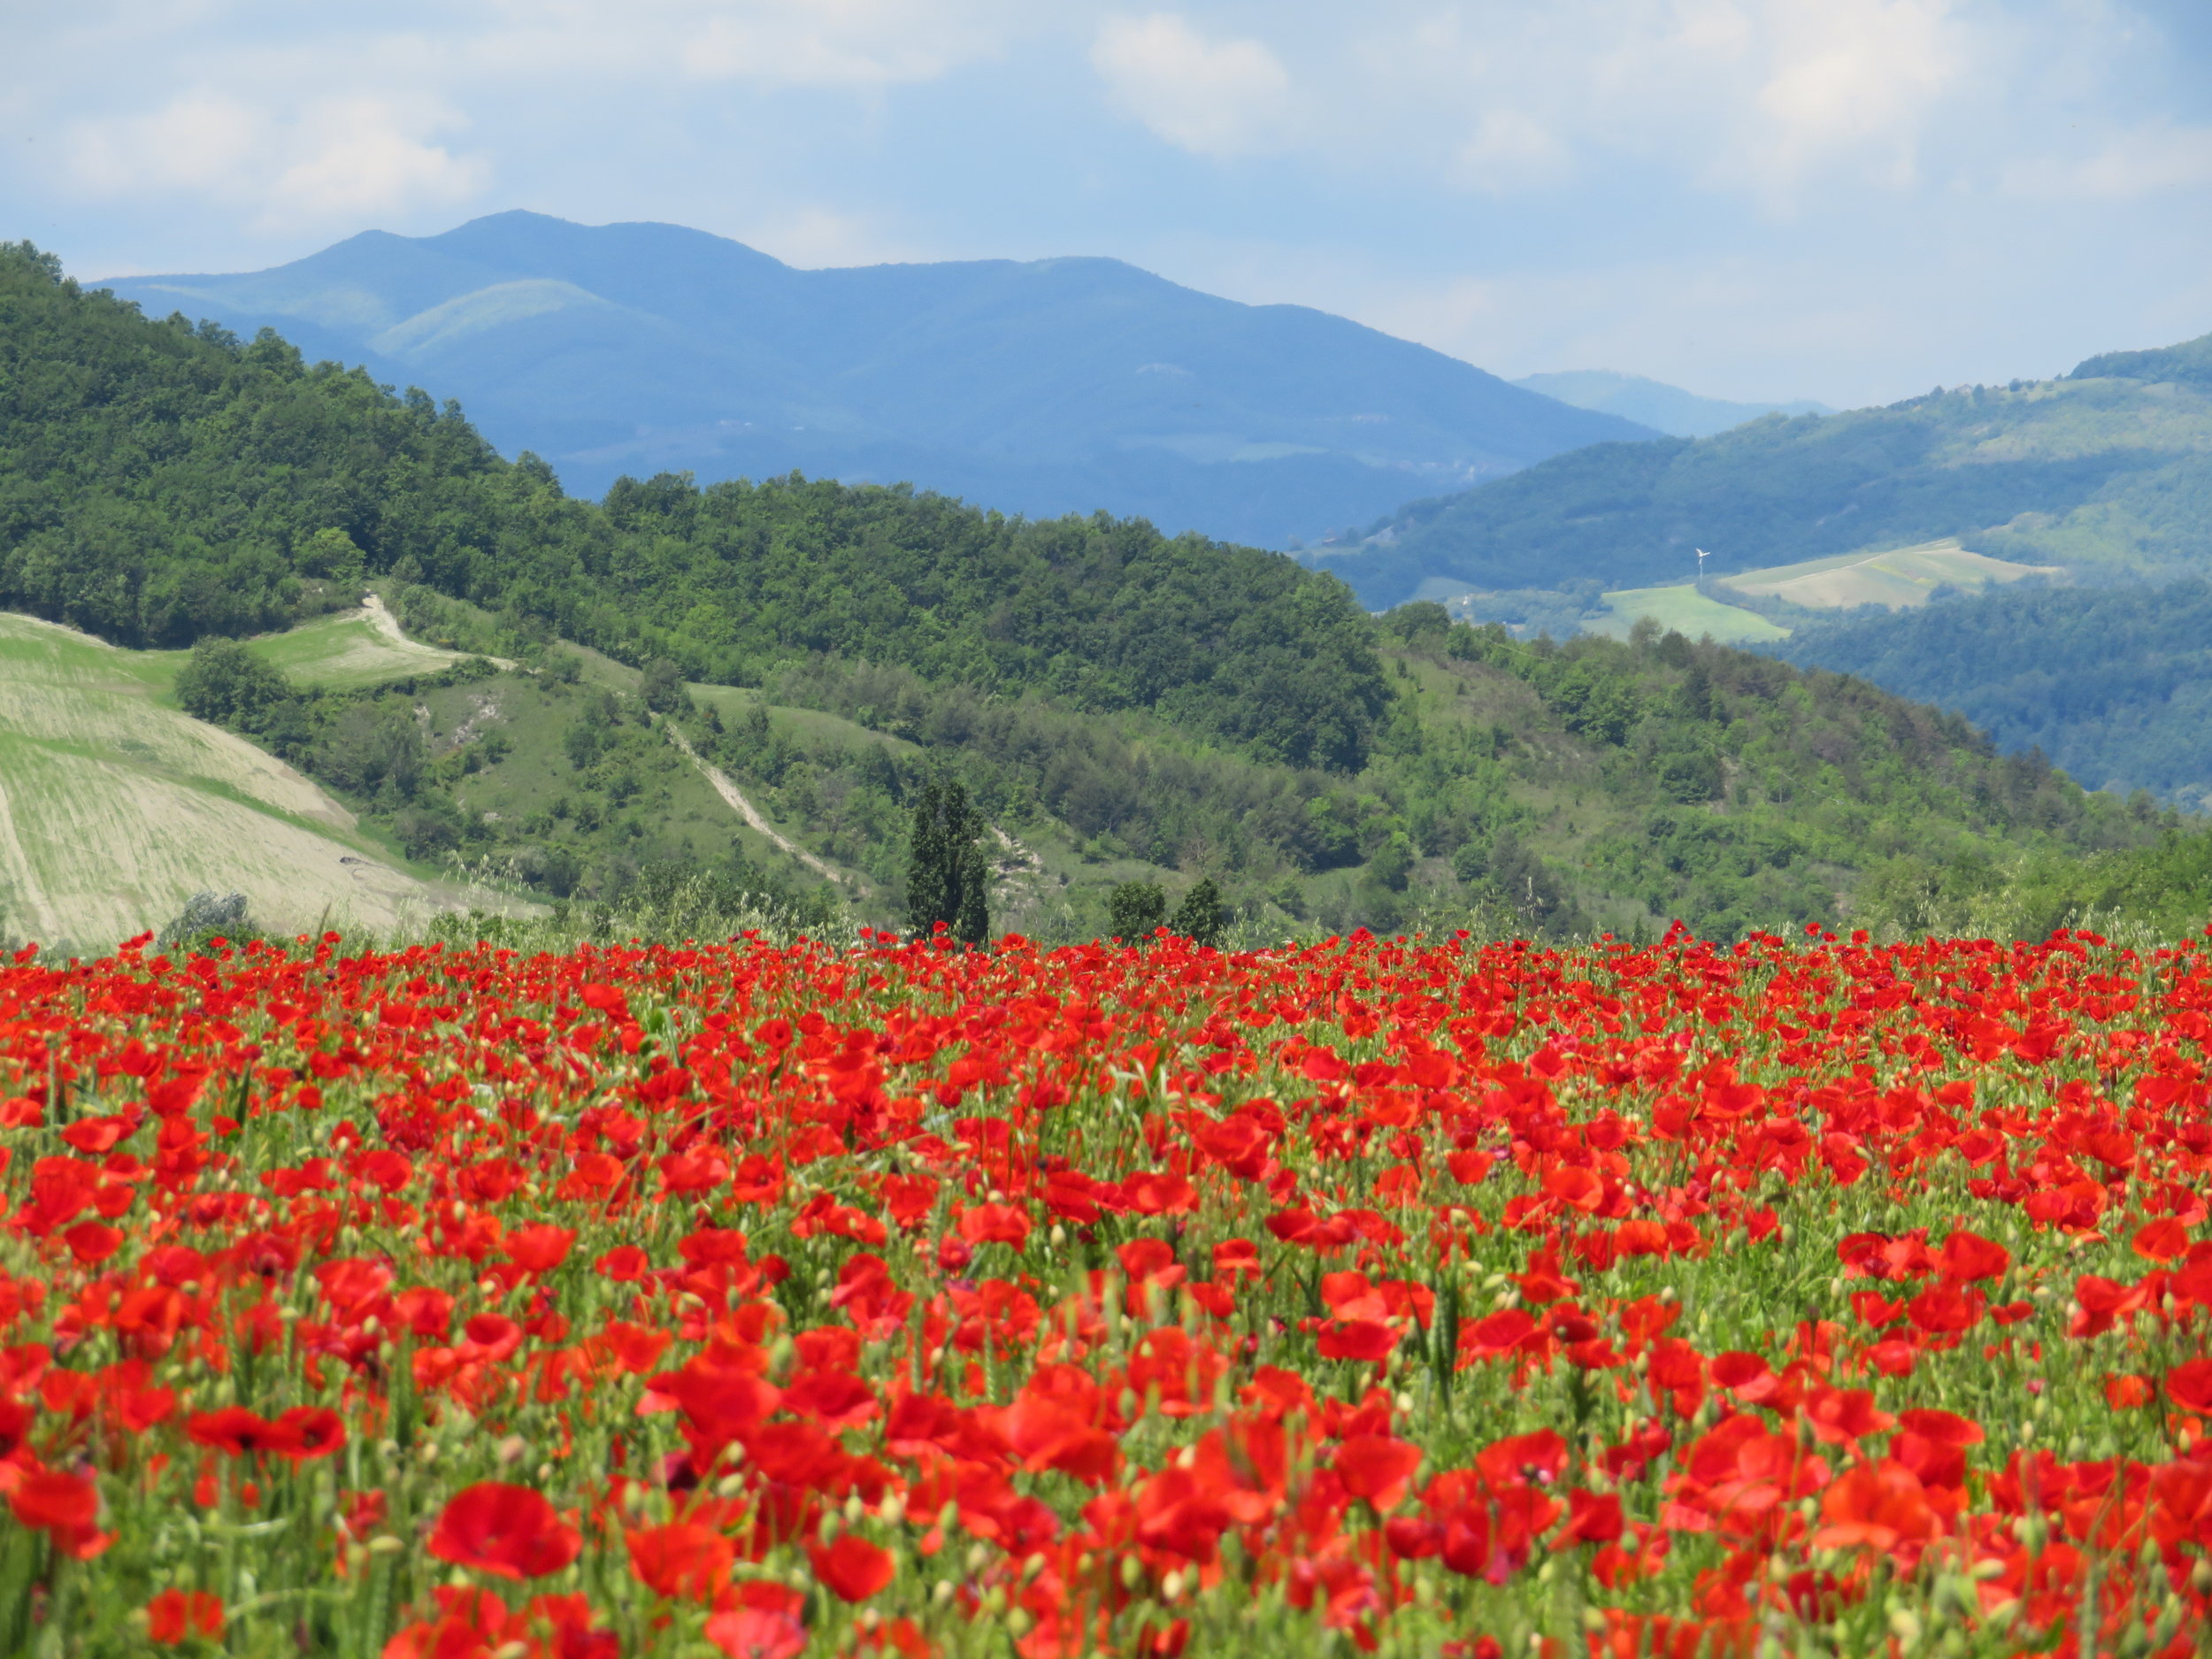 The vistas were superb … fields and fields of poppies.